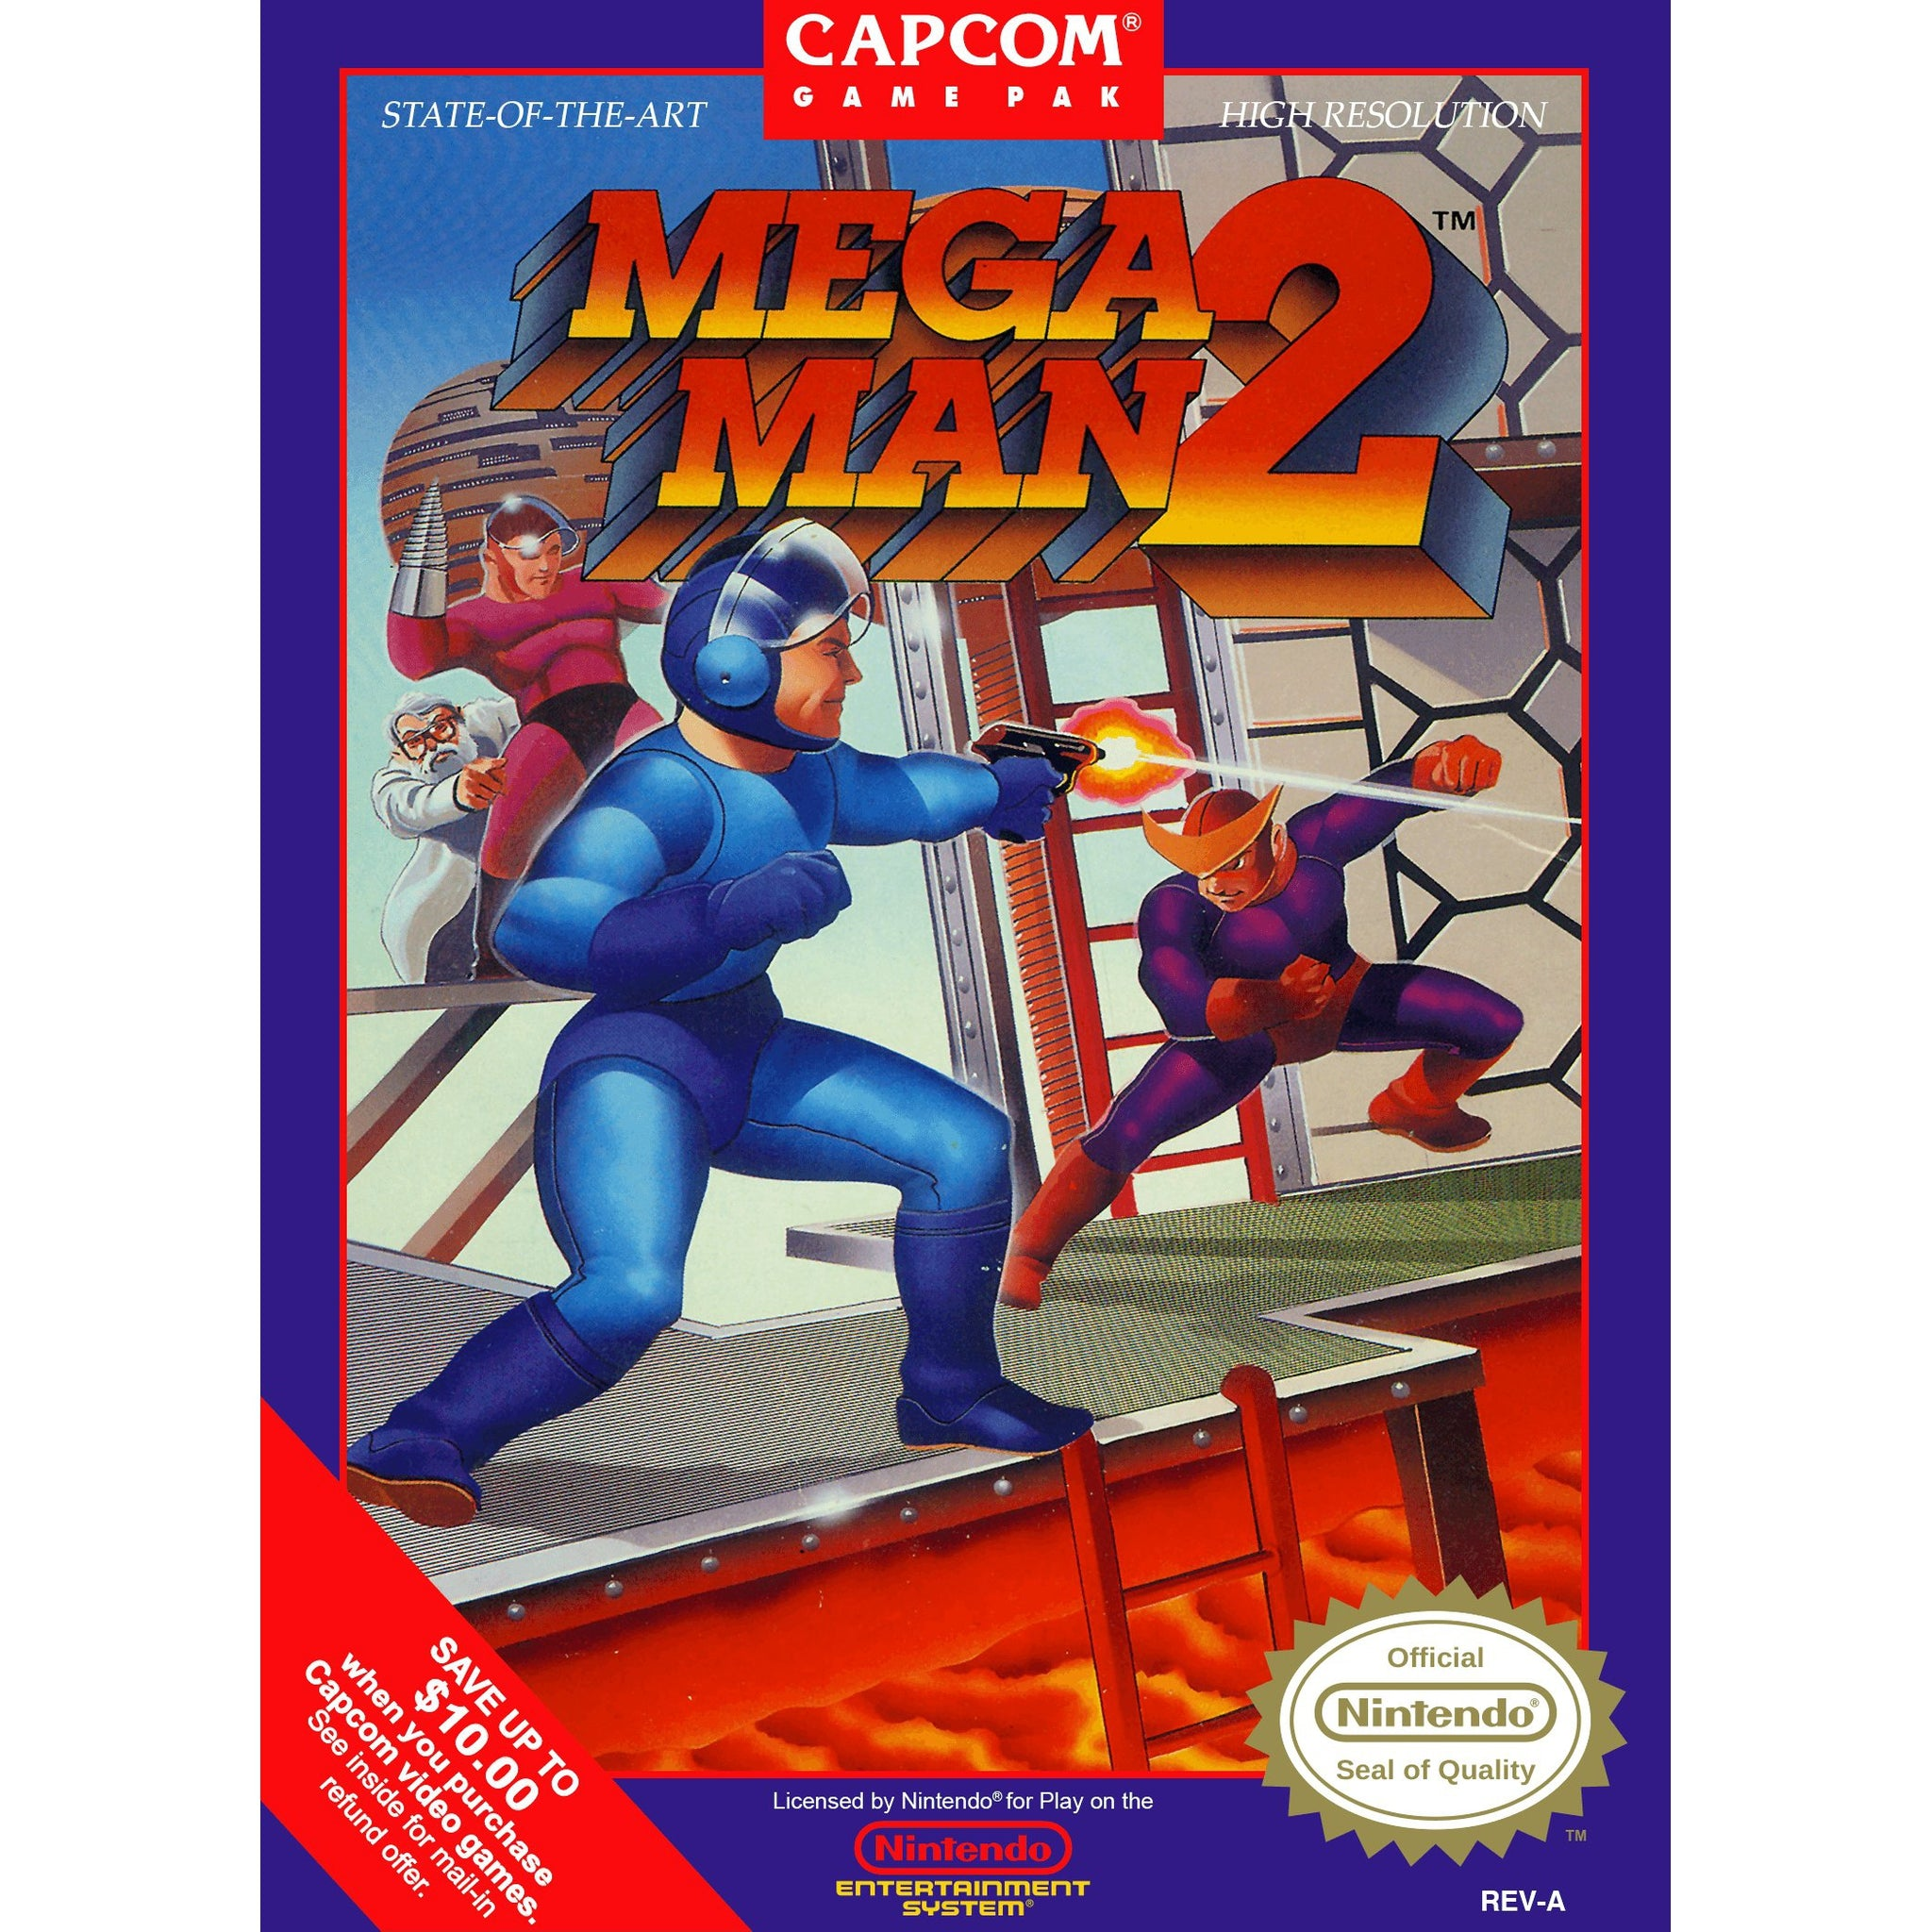 Mega Man 2 - Authentic NES Game Cartridge - YourGamingShop.com - Buy, Sell, Trade Video Games Online. 120 Day Warranty. Satisfaction Guaranteed.